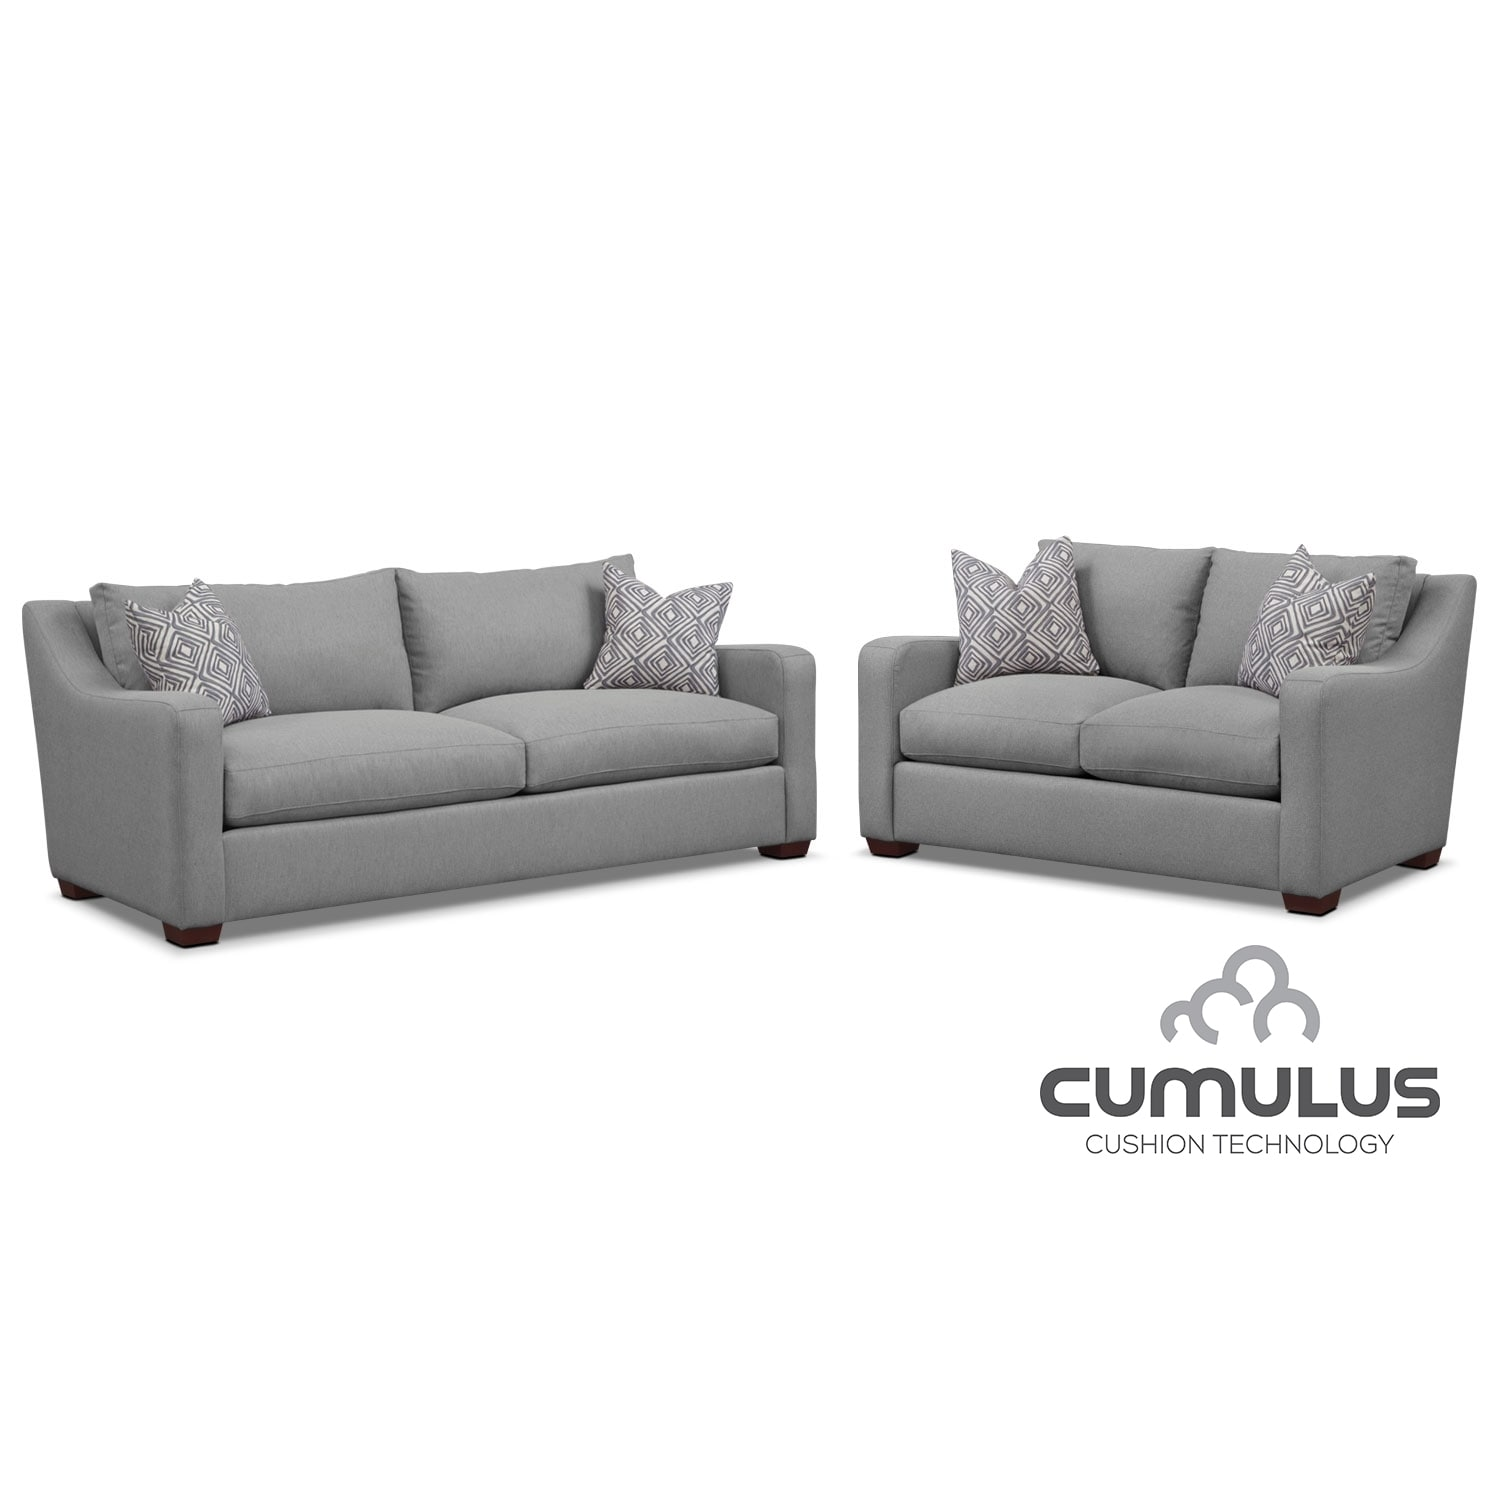 Living Room Furniture - Jules Cumulus Sofa, and Loveseat Set- Gray